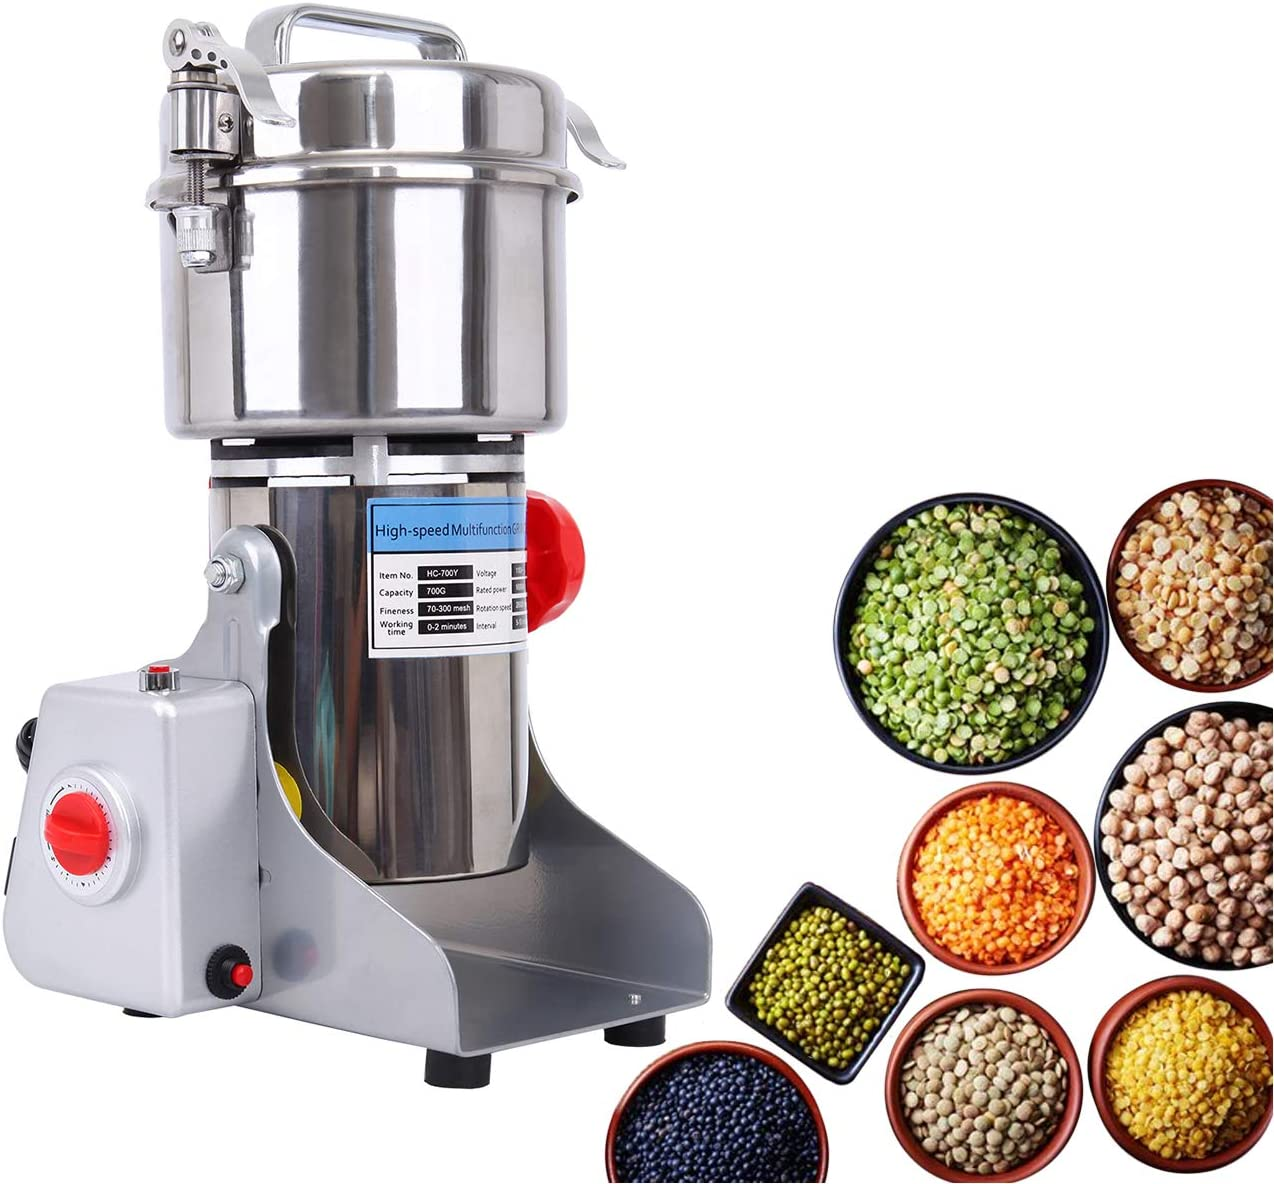 TryE 700g Electric Grain Miller Grinder Powder Machine 70-300 Mesh Stainless Steel Commercial Pulverizer Grinding Machine for Coffee Herb Spice Pepper 110V